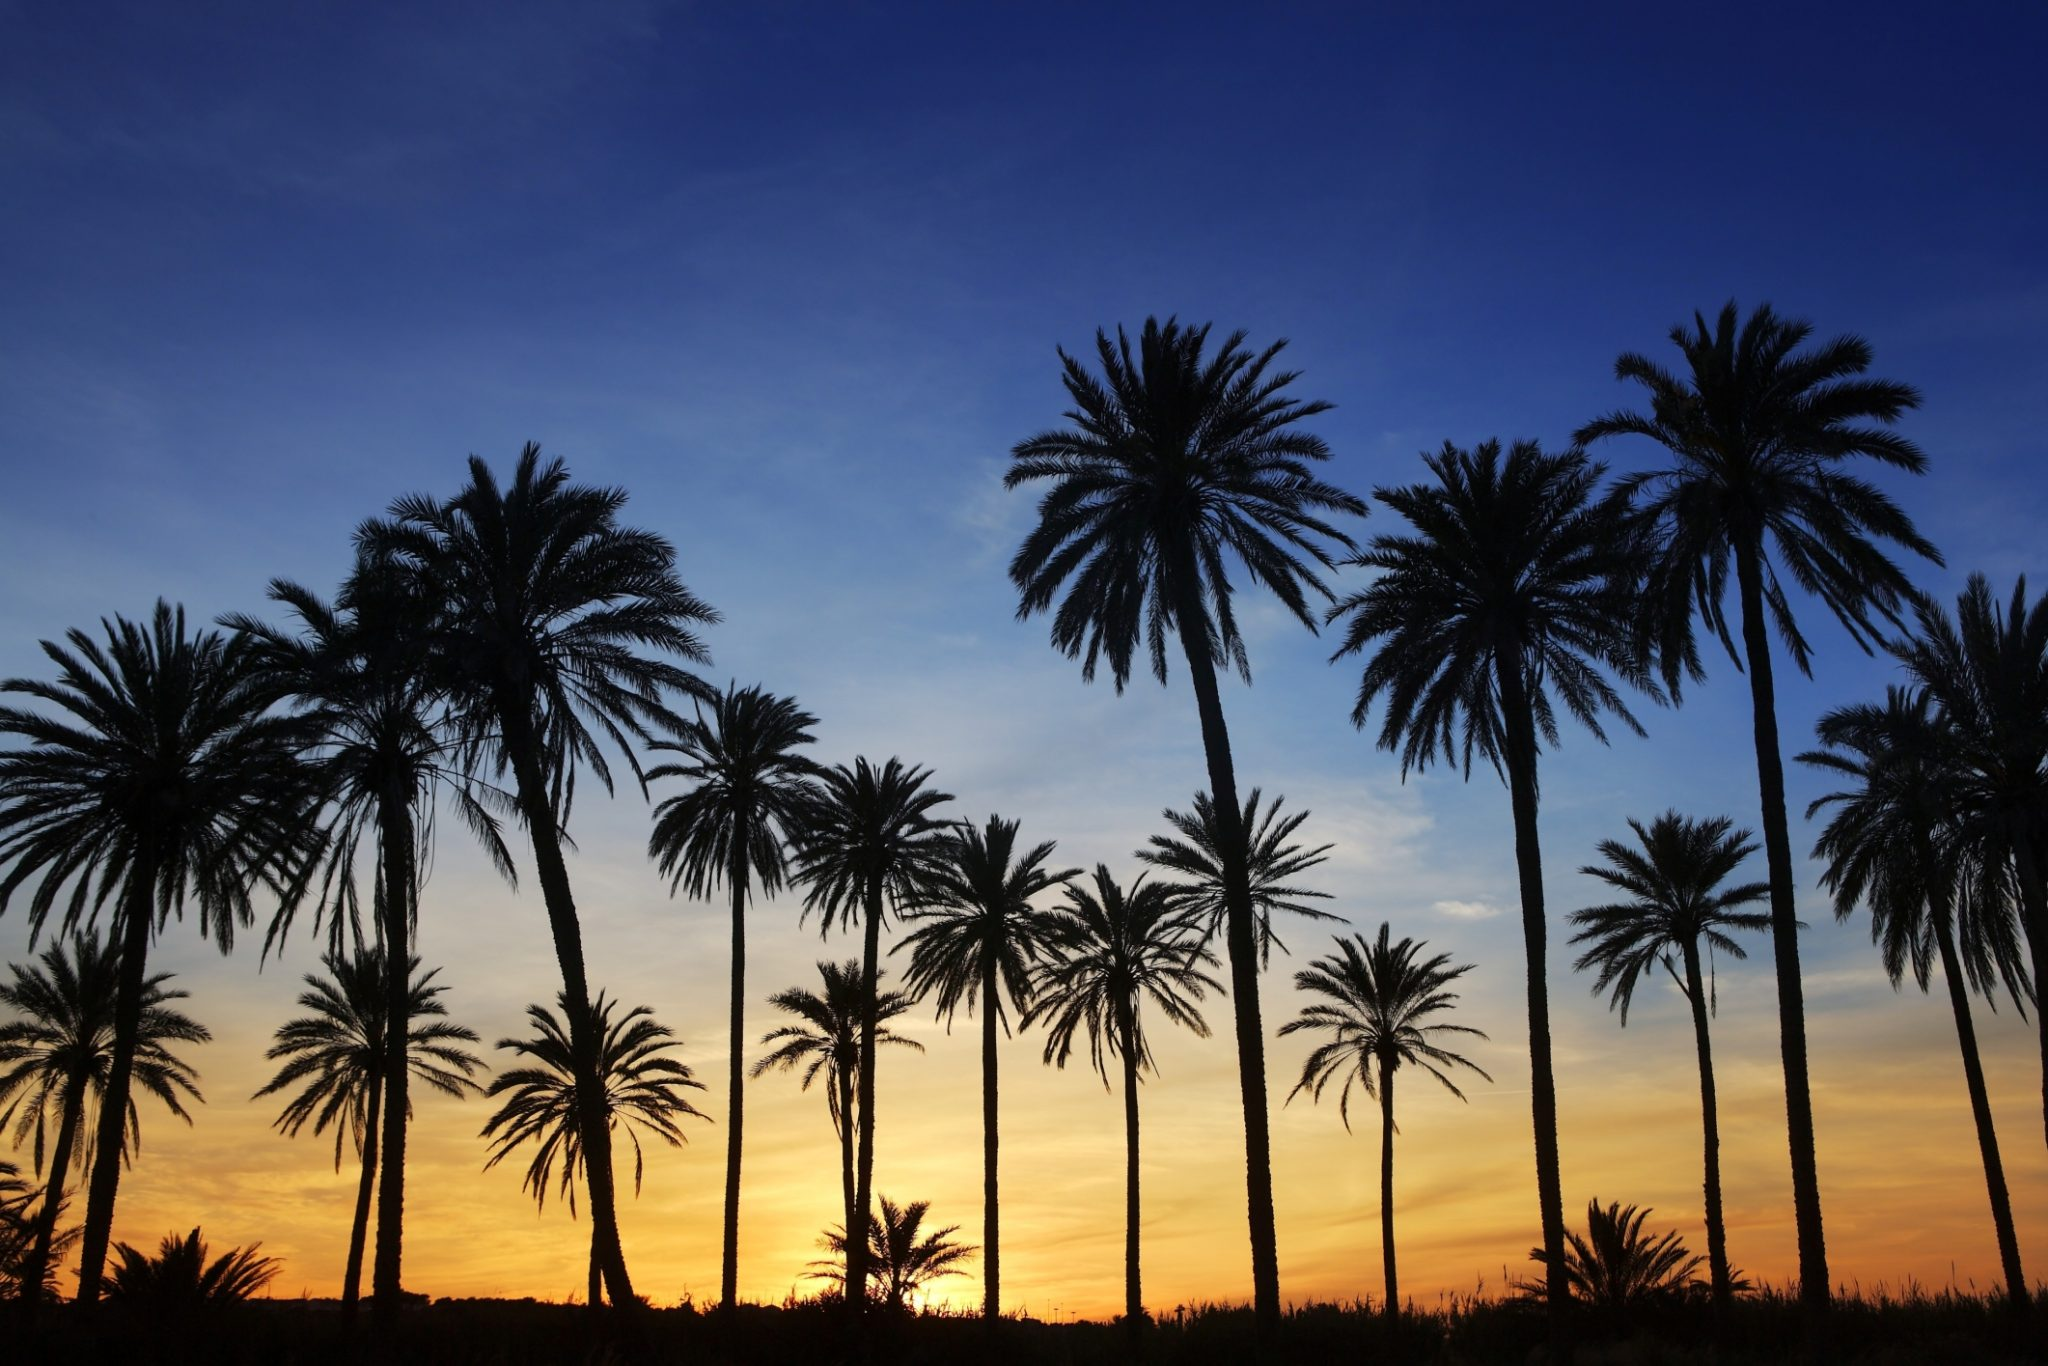 palmtrees-sunset.jpg